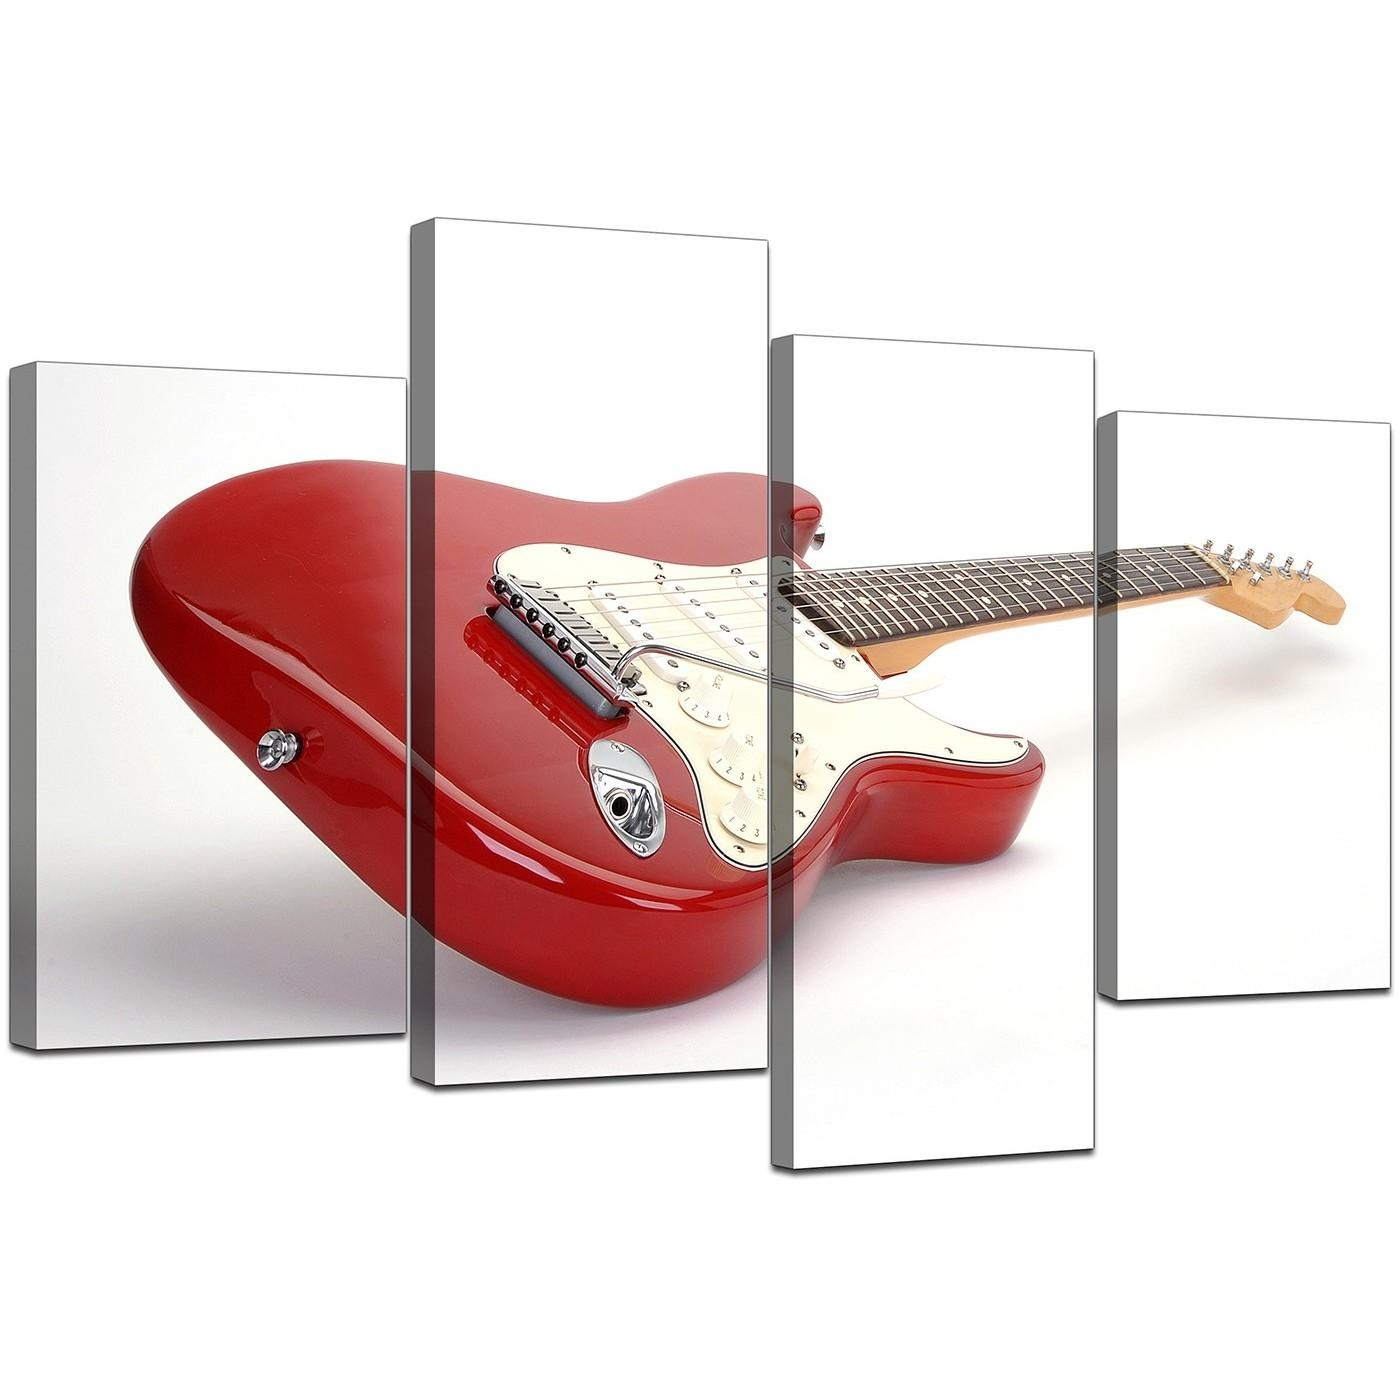 Electric Guitar Canvas Wall Art In Red – For Bedroom Inside Guitar Canvas Wall Art (View 15 of 20)